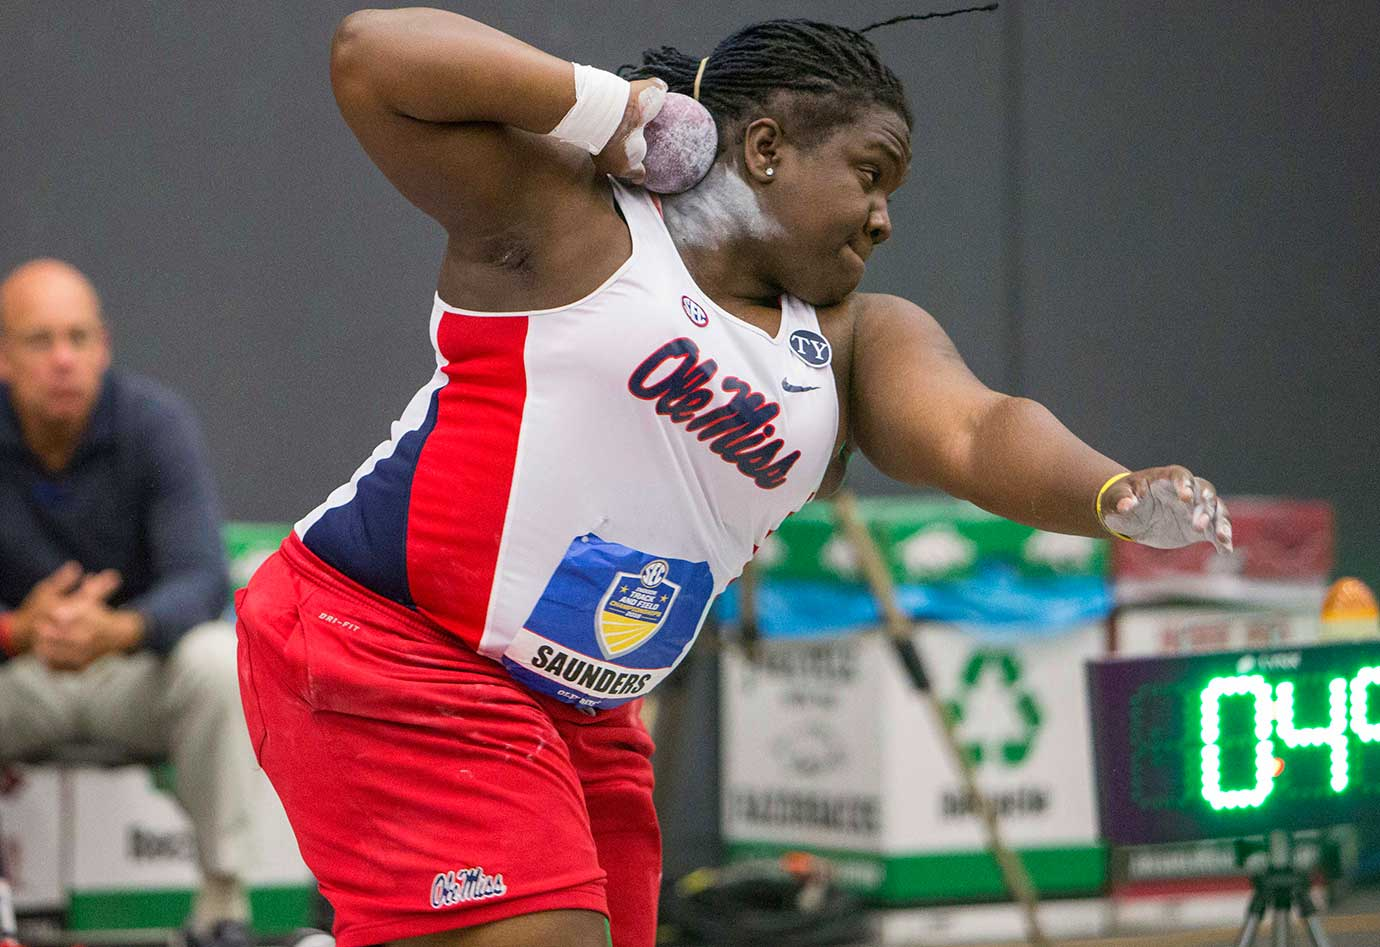 Mississippi's Raven Saunders prepares to throw the shot put during the SEC indoor track and field championships.